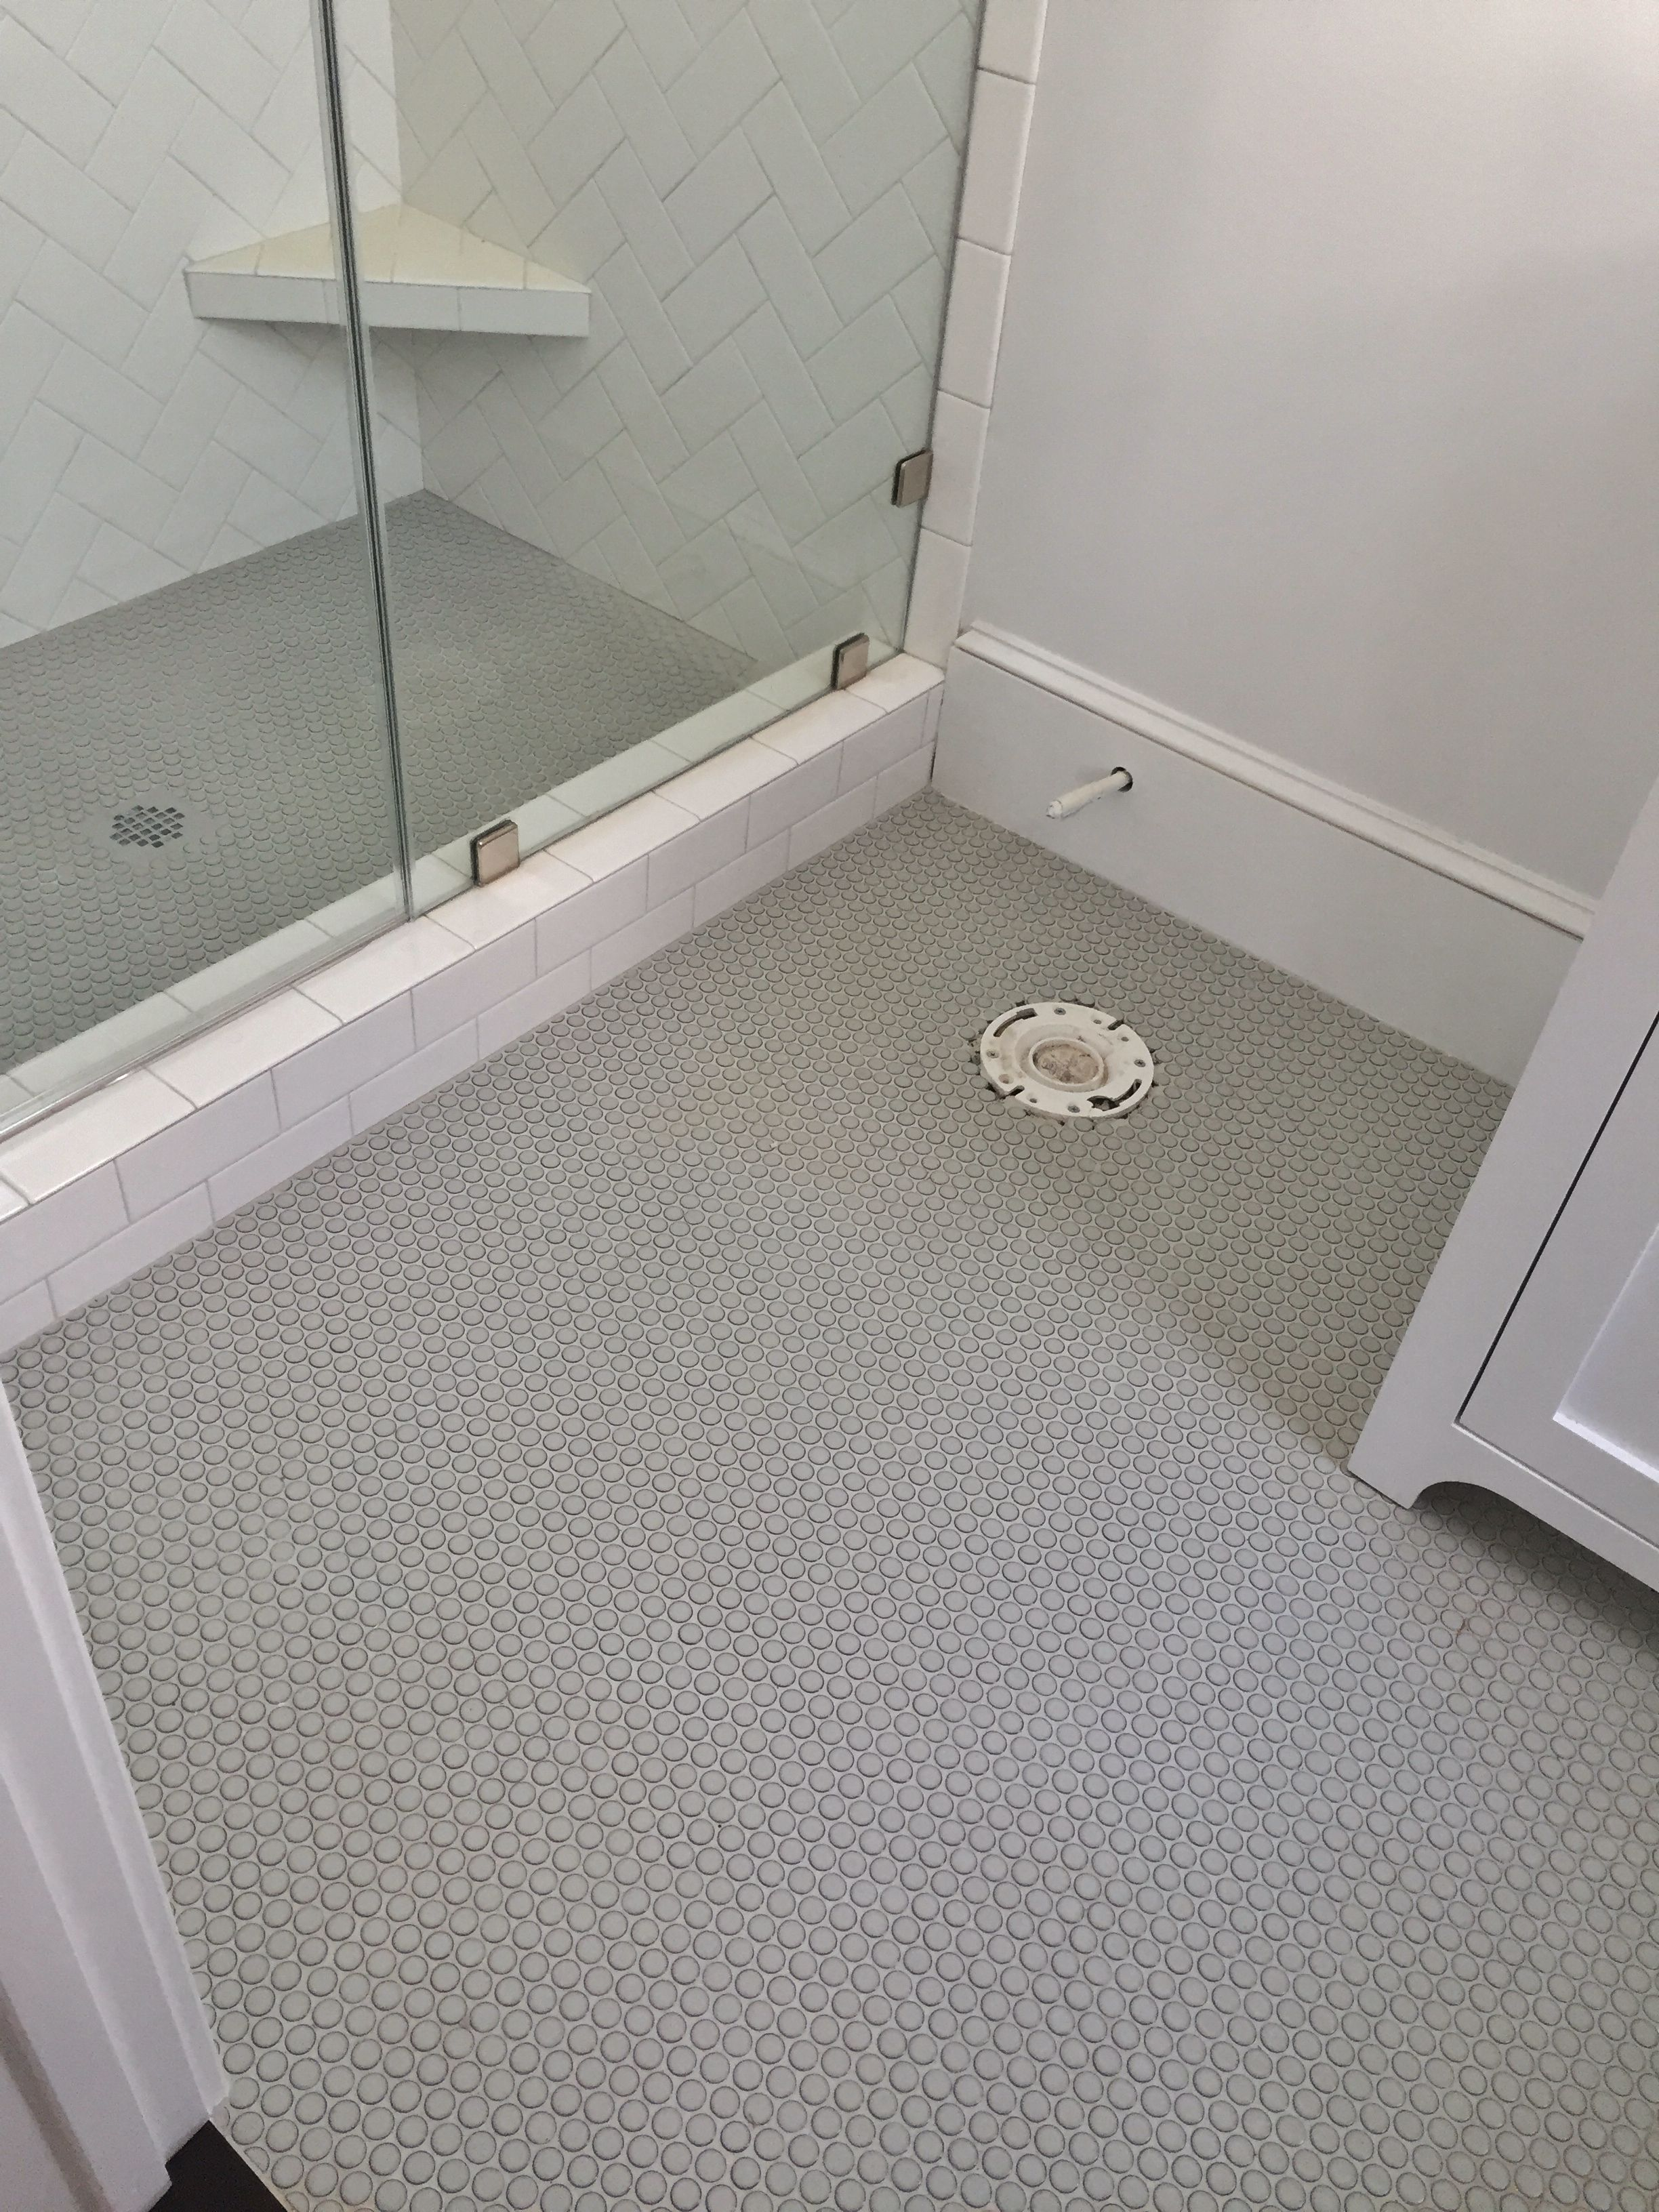 Pinterest Bathroom Floors - Gray penny rounds on bathroom floor and shower floor 3x6 white subway tile set in